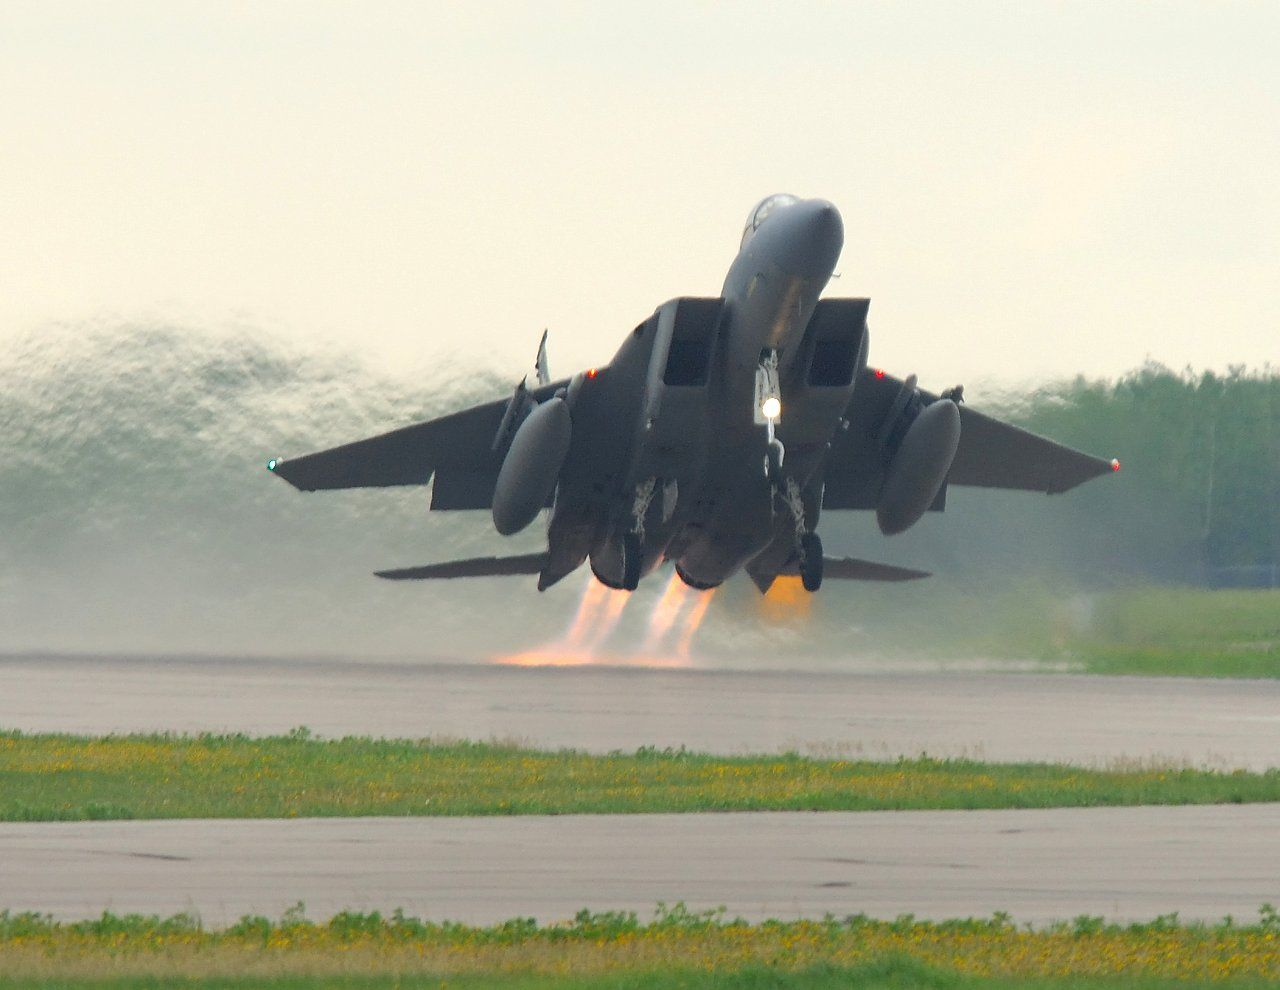 USAF Photo of the Weekend B Spirit and FE Strike Eagles over